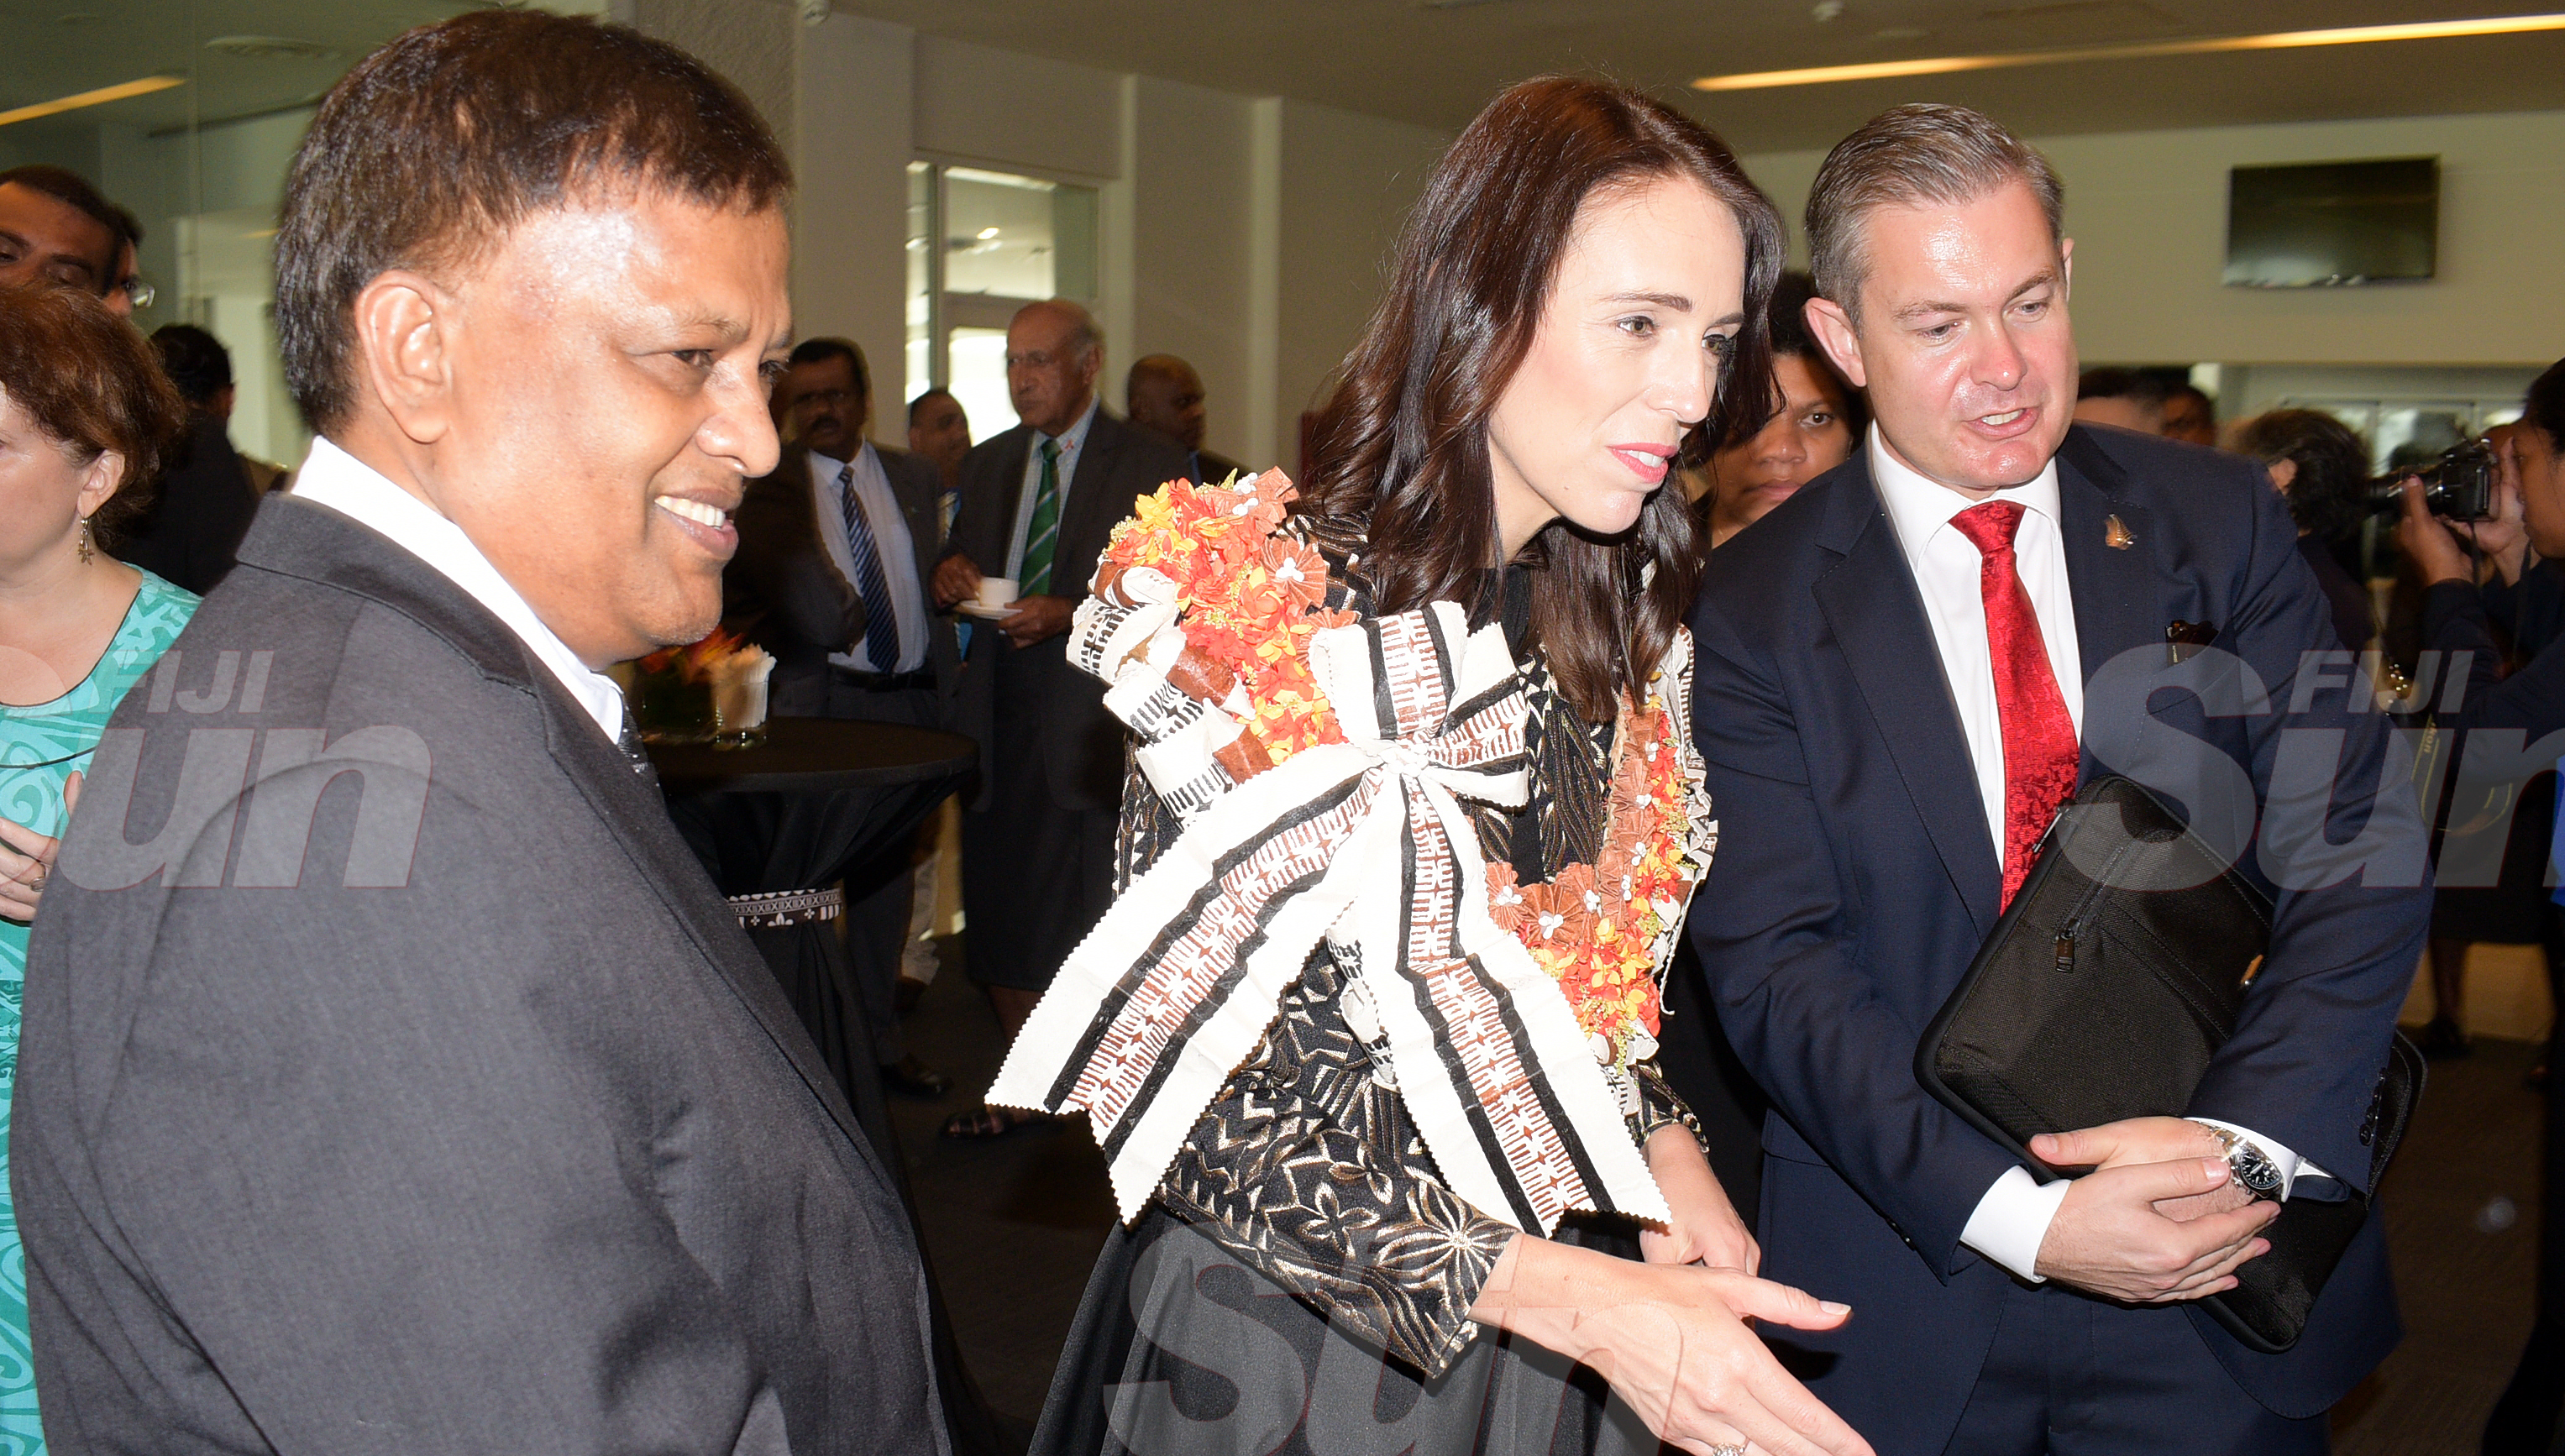 From left-Acting Chief Justice Kamal Kumar, New Zealand Prime Minister Jacinda Ardern and New Zealand High Commissioner to Fiji Jonathan Curr at Grand Pacific Hotel on February 25, 2020. Photo: Ronald Kumar.